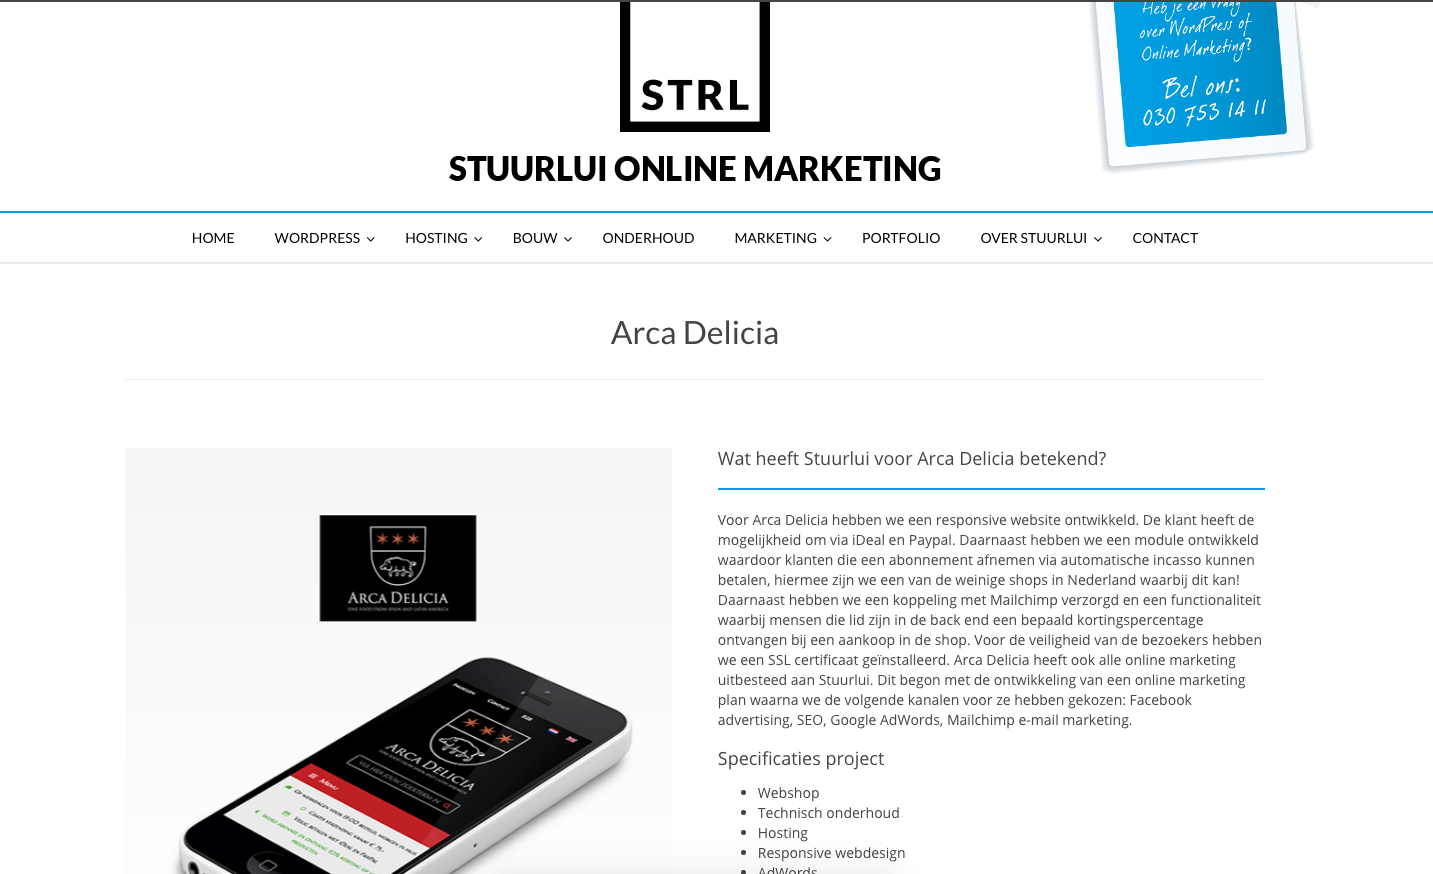 Stuurlui online marketing